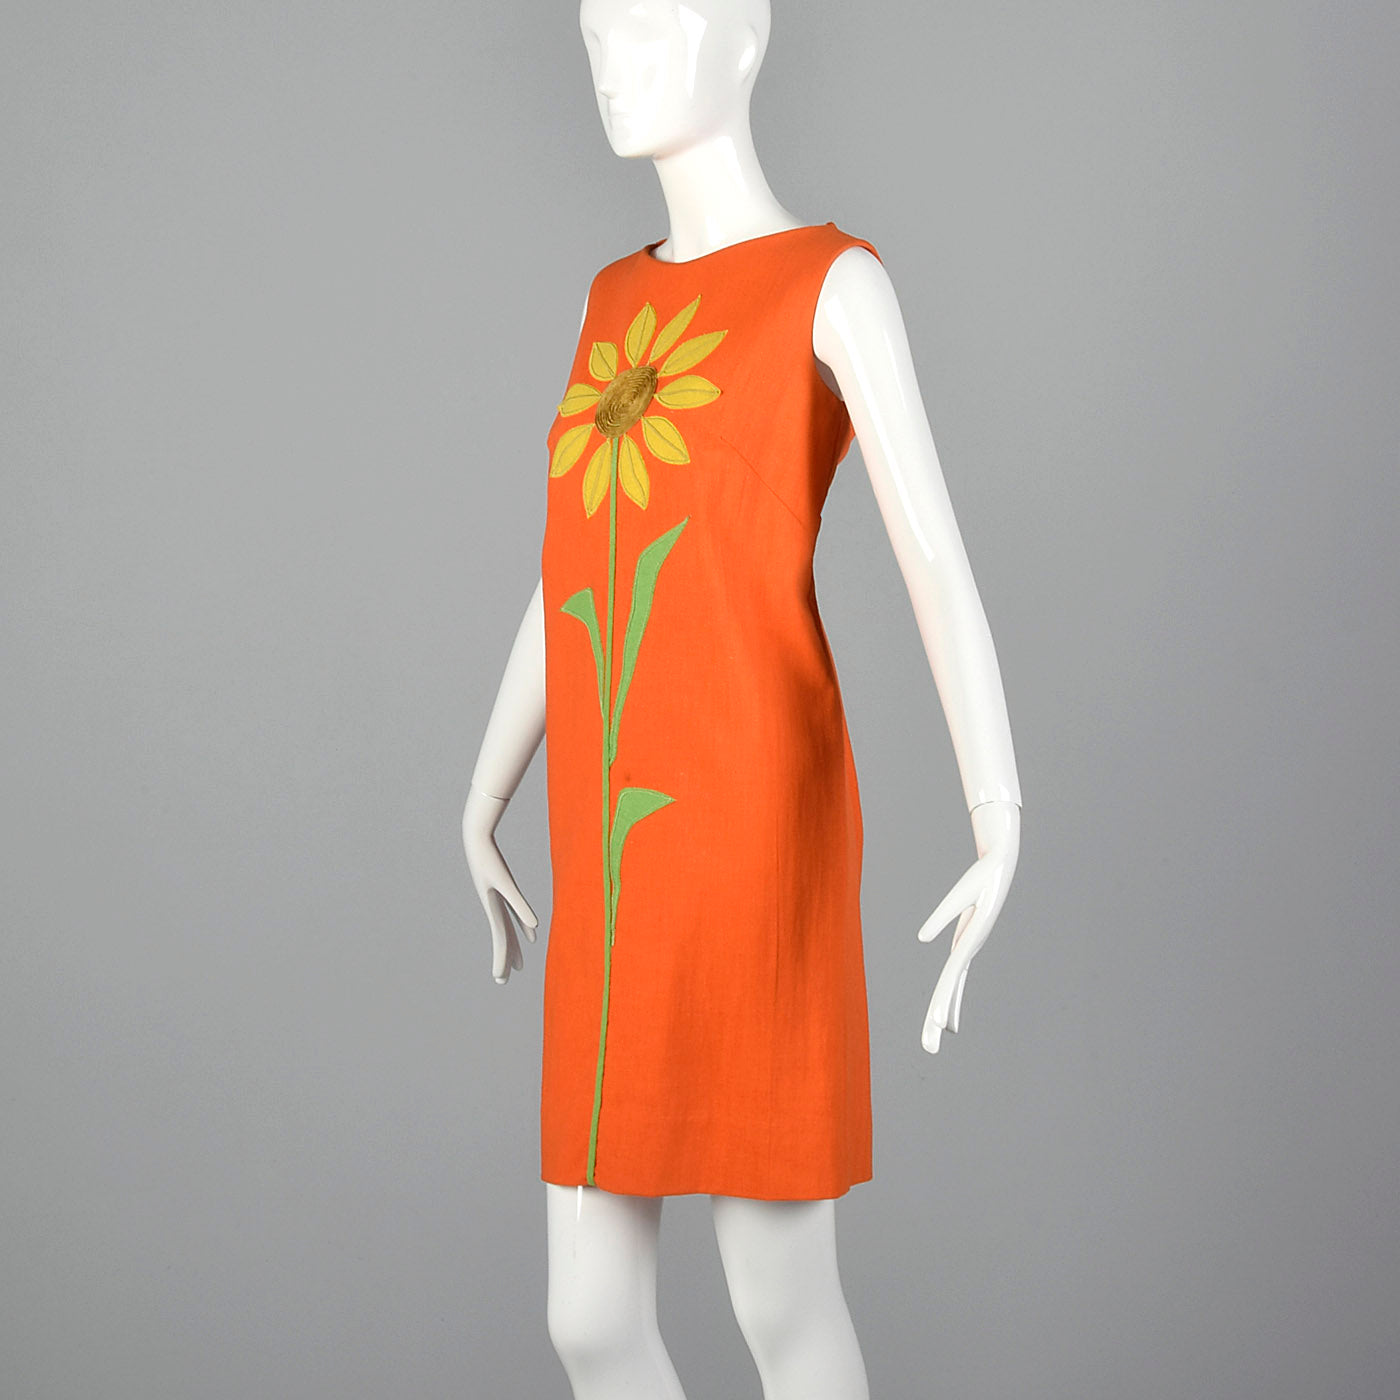 1960s Orange Shift Dress with Sunflower Applique